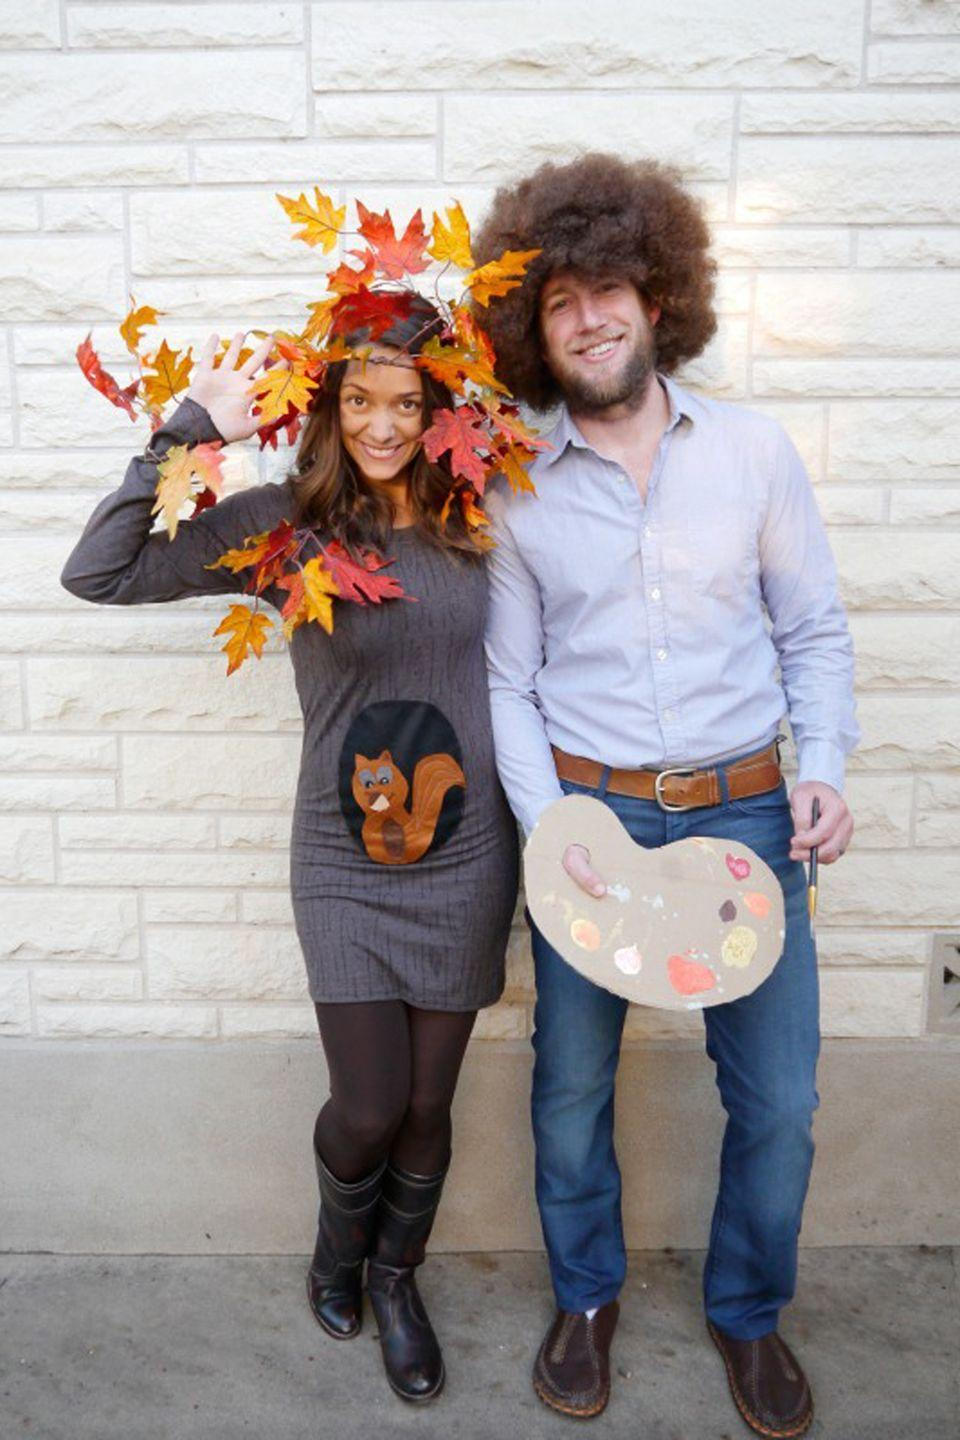 """<p>The ultimate family costume for <a href=""""https://www.countryliving.com/life/a36792/bob-ross-fun-facts/"""" rel=""""nofollow noopener"""" target=""""_blank"""" data-ylk=""""slk:Bob Ross"""" class=""""link rapid-noclick-resp"""">Bob Ross</a> fans. </p><p><strong>Get the tutorial at <a href=""""https://www.creatingreallyawesomefunthings.com/diy-family-halloween-costume/"""" rel=""""nofollow noopener"""" target=""""_blank"""" data-ylk=""""slk:Create Really Awesome Fun Things"""" class=""""link rapid-noclick-resp"""">Create Really Awesome Fun Things</a>.</strong><br></p><p><a class=""""link rapid-noclick-resp"""" href=""""https://www.amazon.com/GoFriend-Artificial-Decoration-Thanksgiving-Christmas/dp/B075ZPNMK1/?tag=syn-yahoo-20&ascsubtag=%5Bartid%7C10050.g.4972%5Bsrc%7Cyahoo-us"""" rel=""""nofollow noopener"""" target=""""_blank"""" data-ylk=""""slk:SHOP FAUX FALL LEAVES"""">SHOP FAUX FALL LEAVES</a> </p>"""